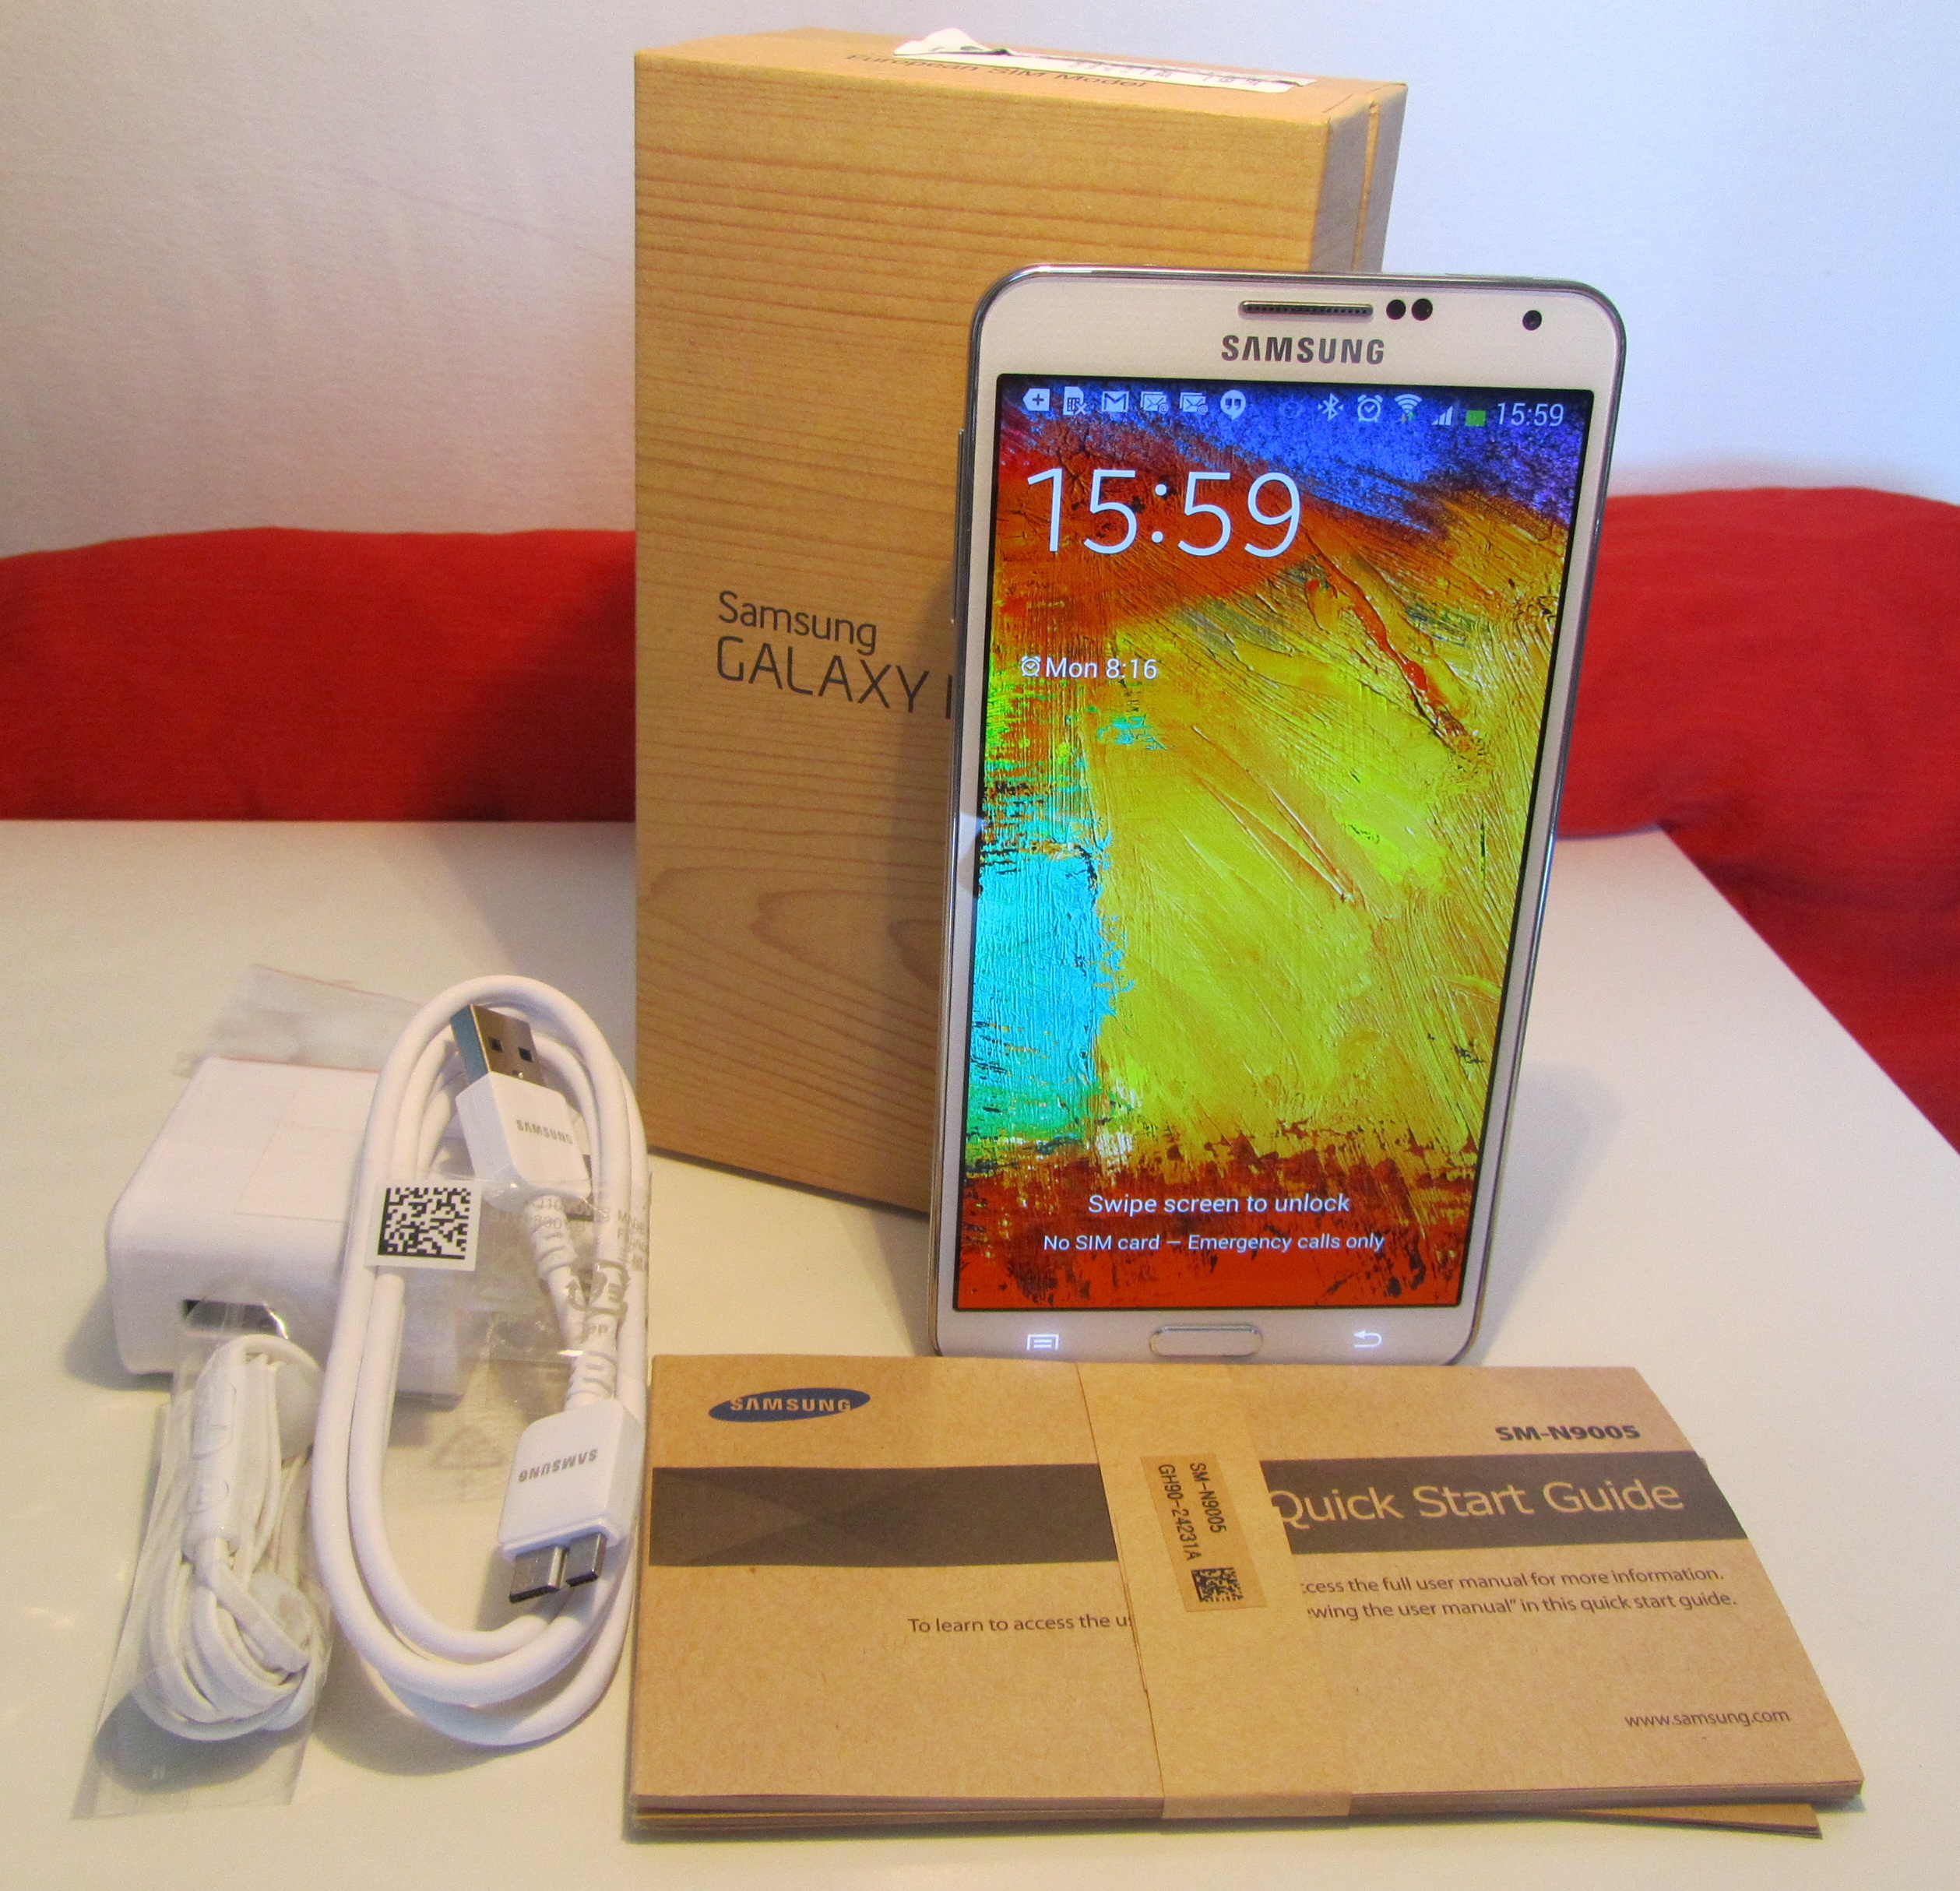 Note3 unboxing1 Samsung Galaxy Note 3 review: One of the best Android handsets money can buy, if you can hold it